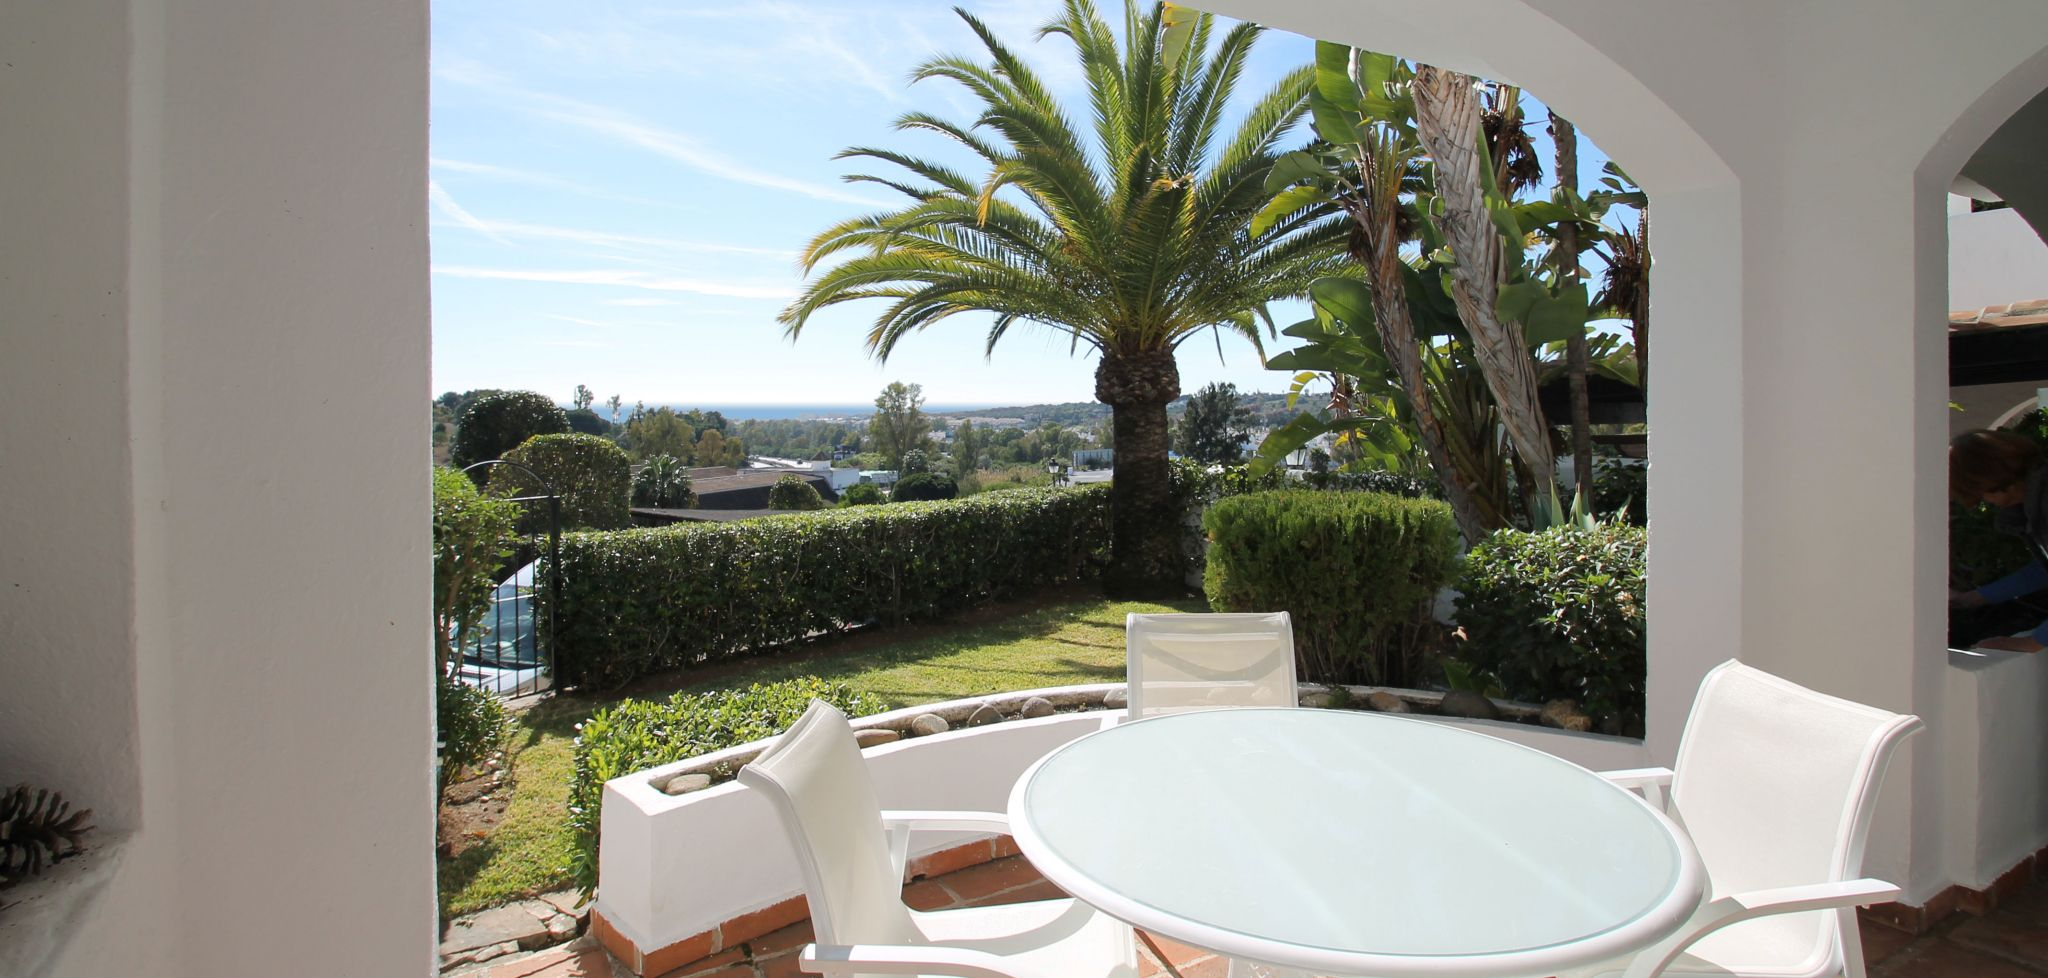 South facing two bedroom garden apartment with sea views in Club Sierra